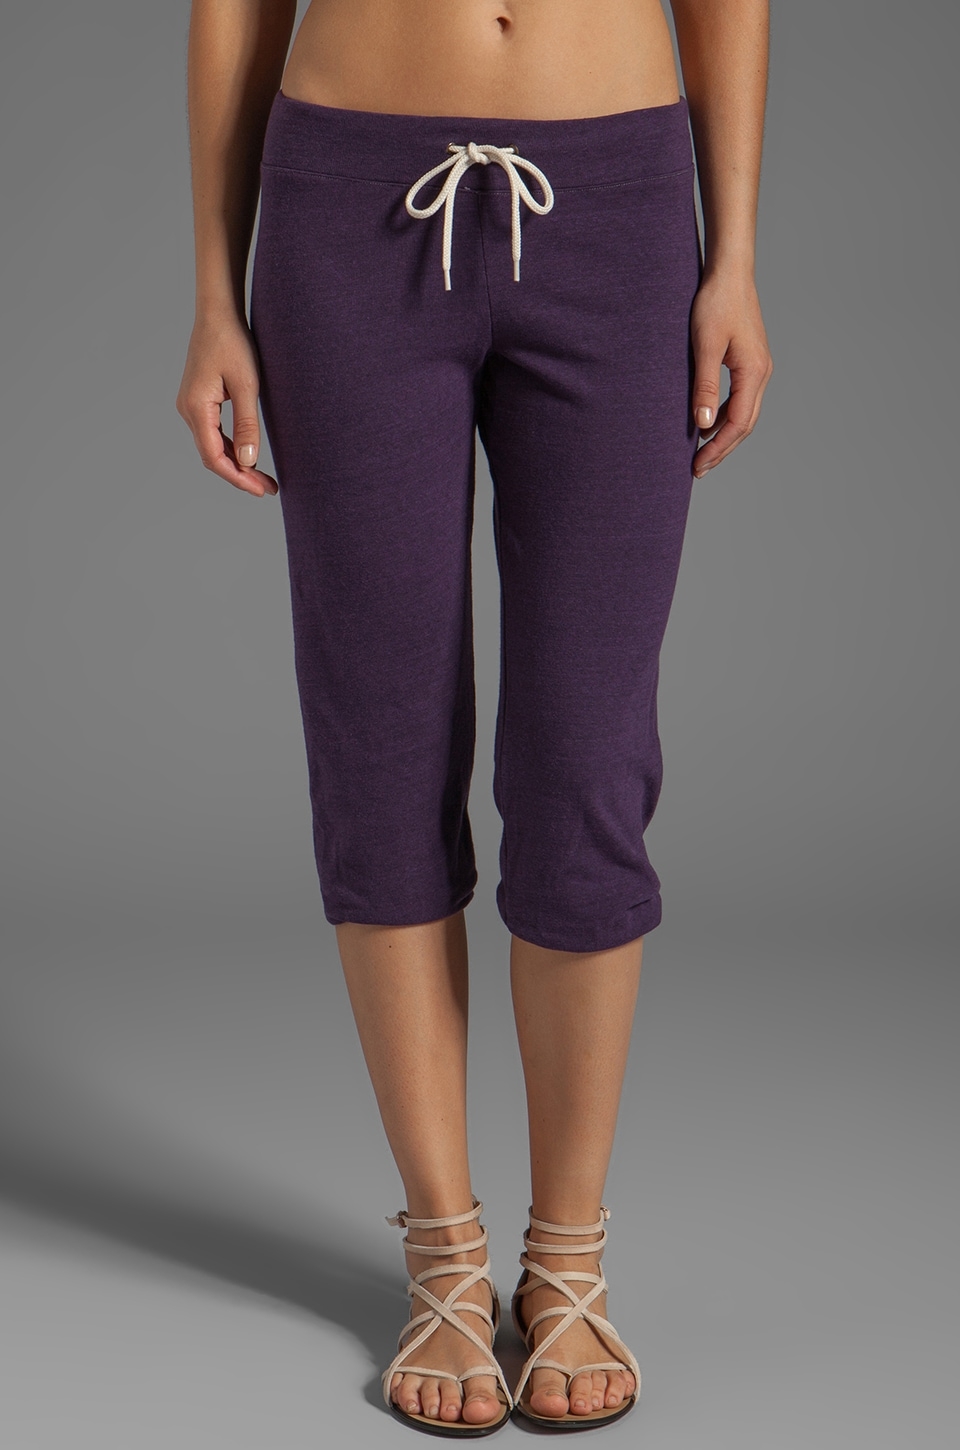 MONROW 3/4 Vintage Fleece Sweats in Plum